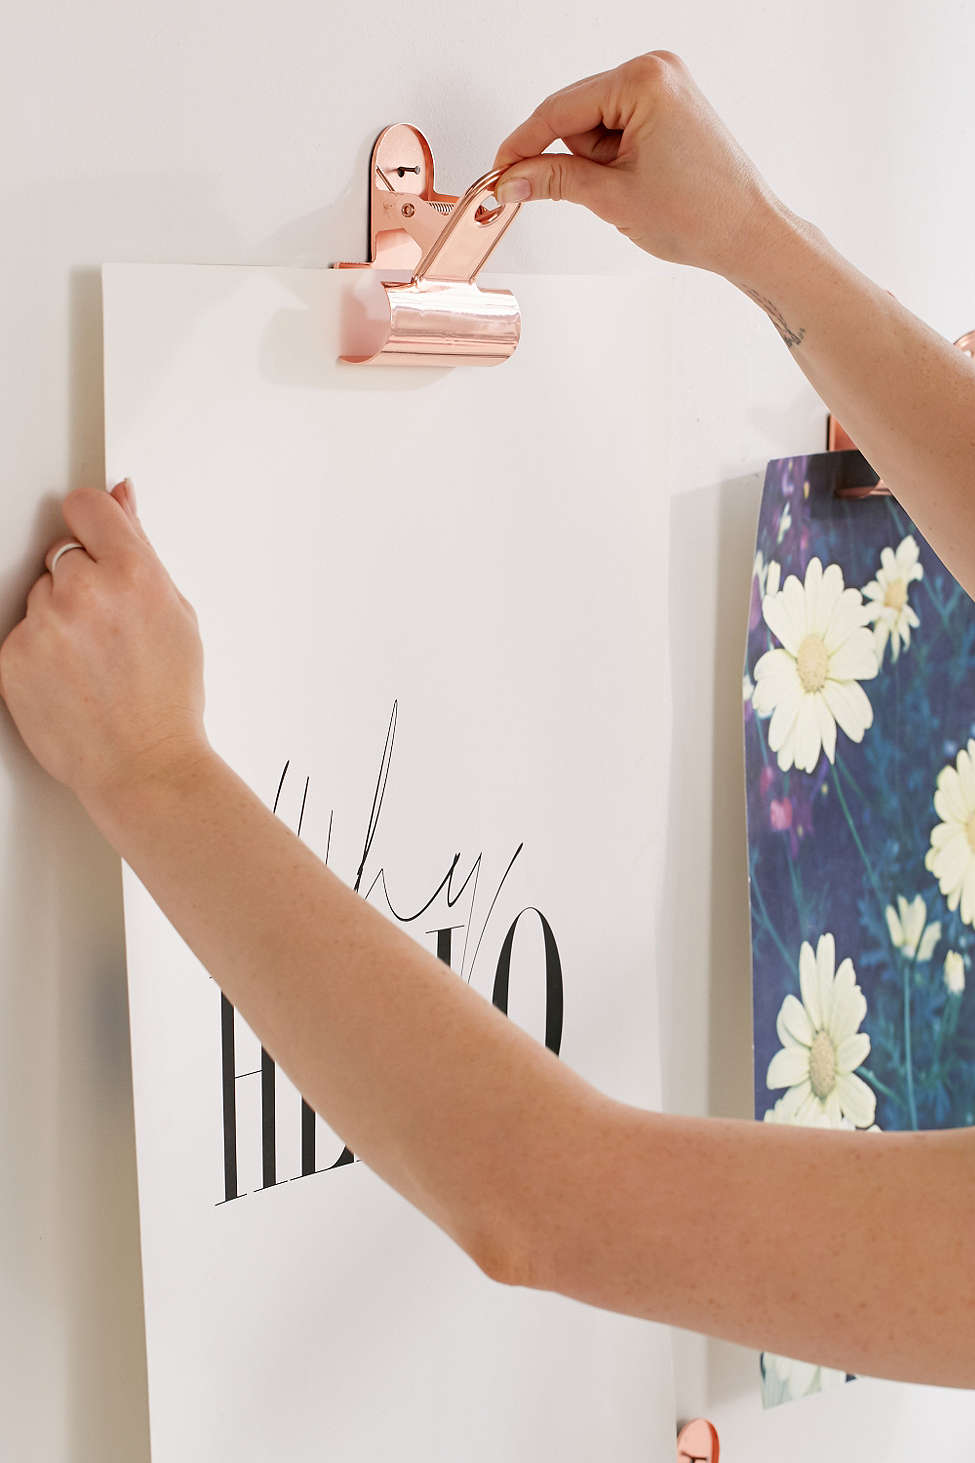 Galleries hung on the paper clip | Cleo-inspire